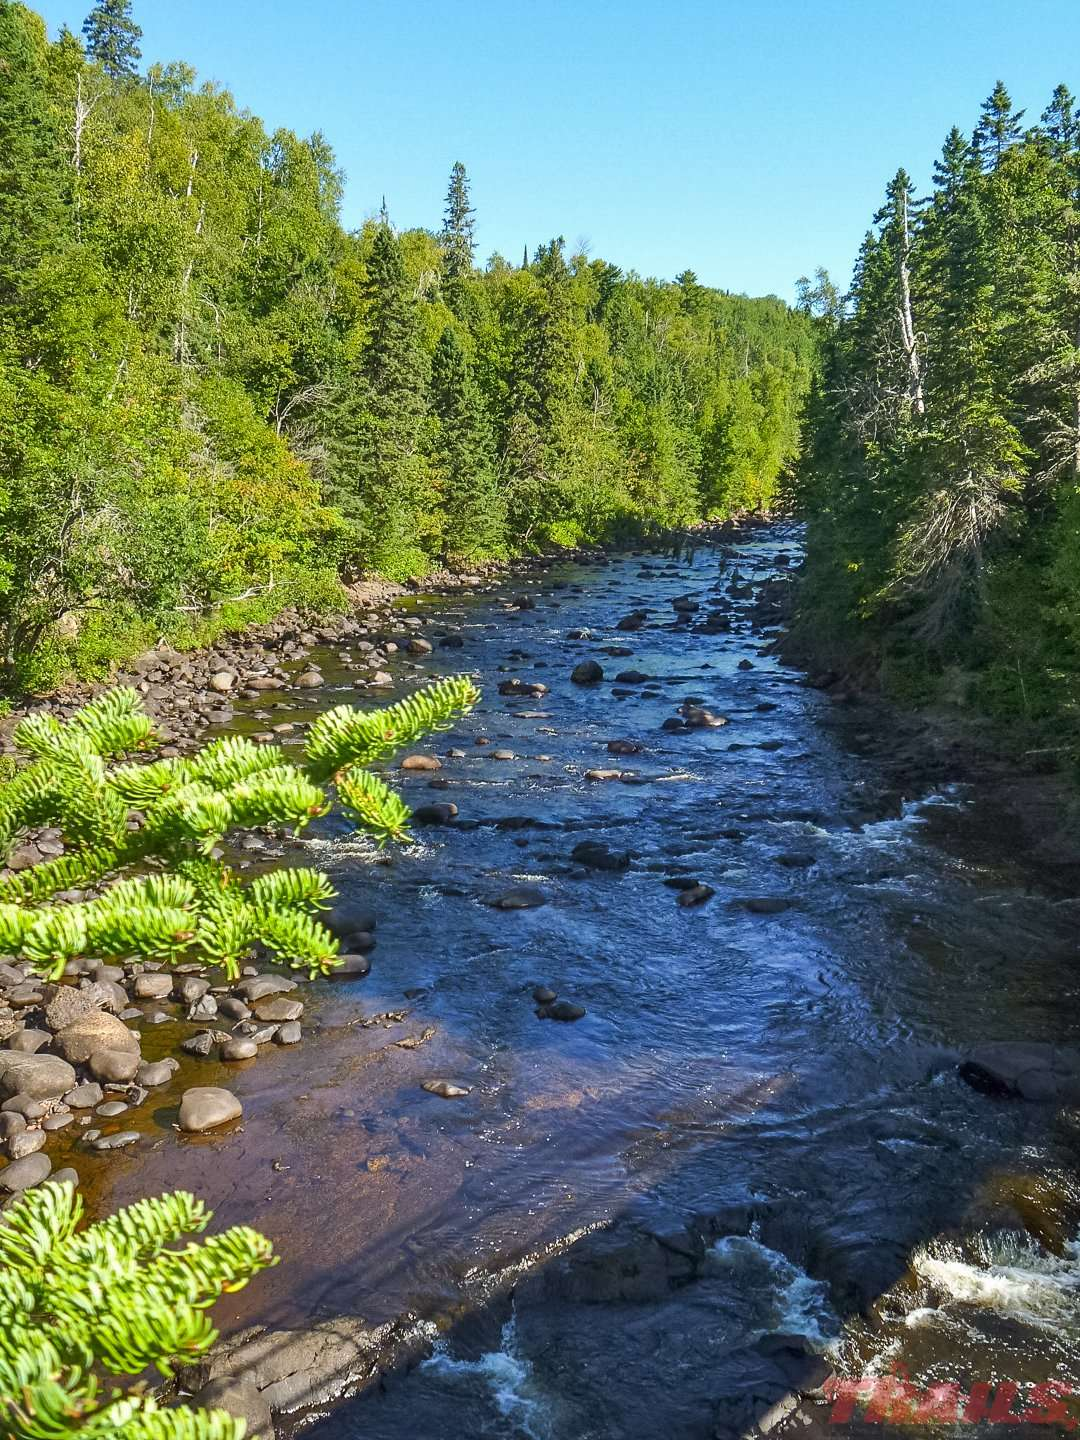 The Brule River flows through Judge C.R. Magney State Park and empties into Lake Superior